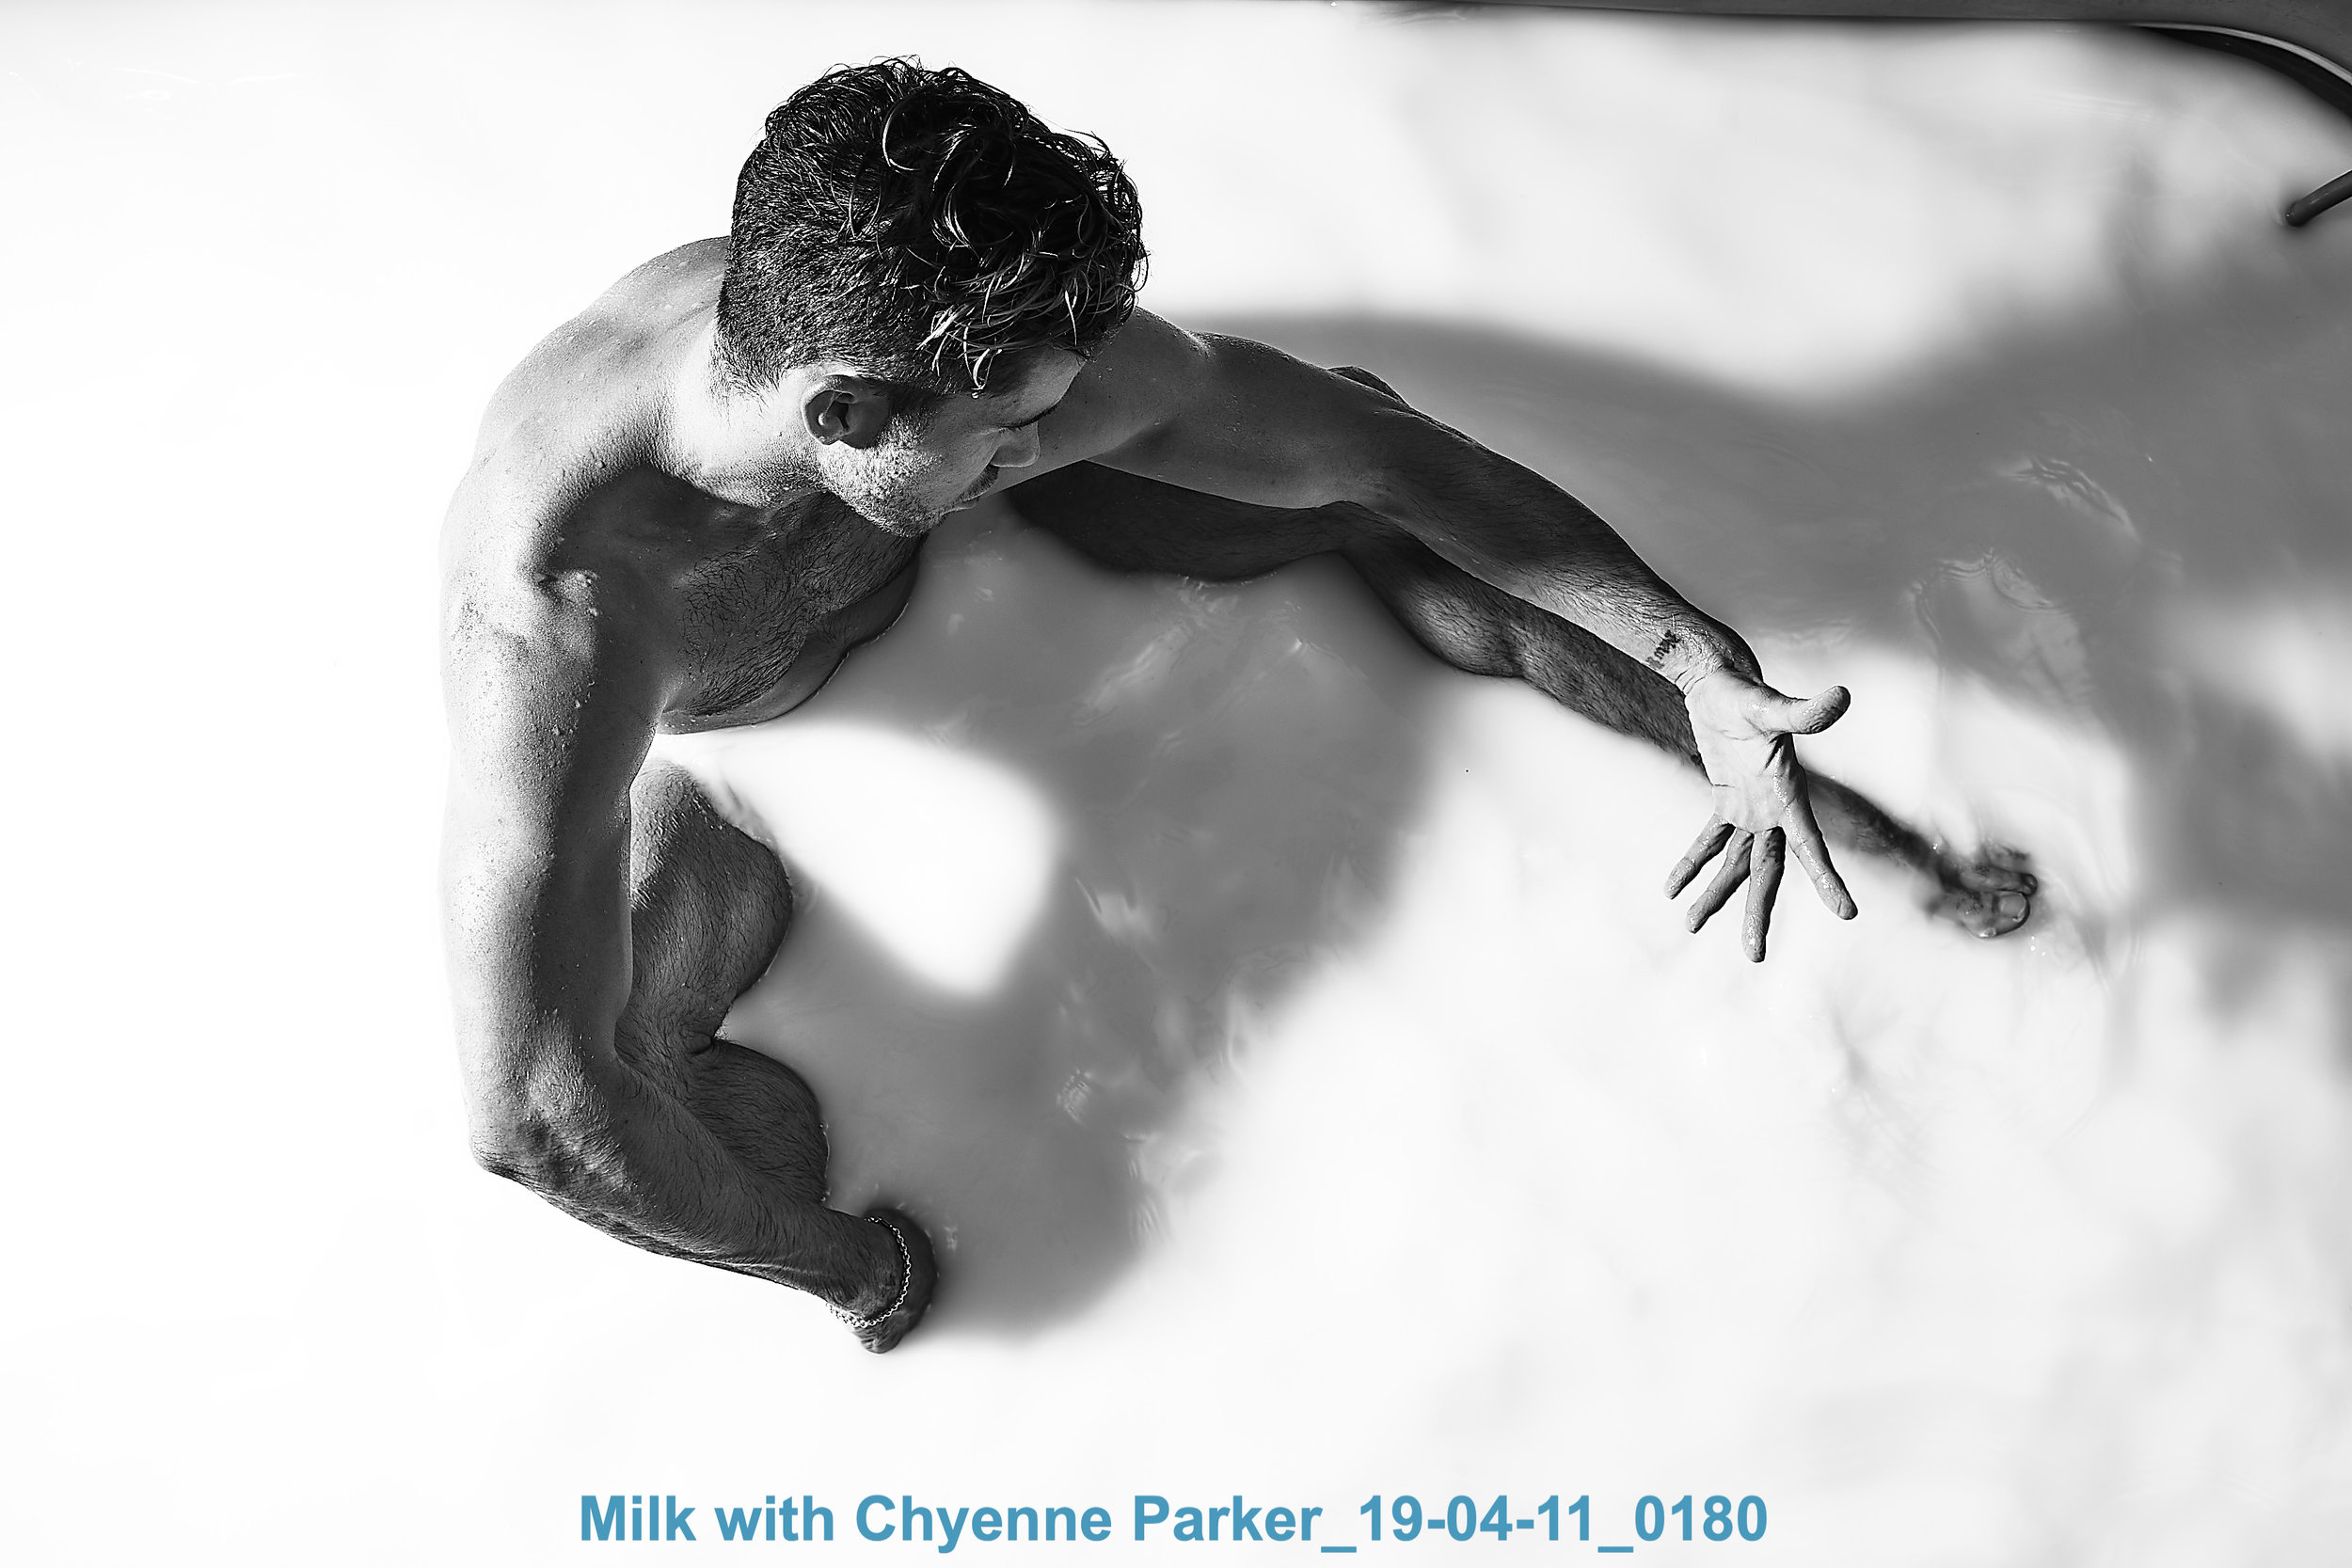 Milk with Chyenne Parker_19-04-11_0180.jpg